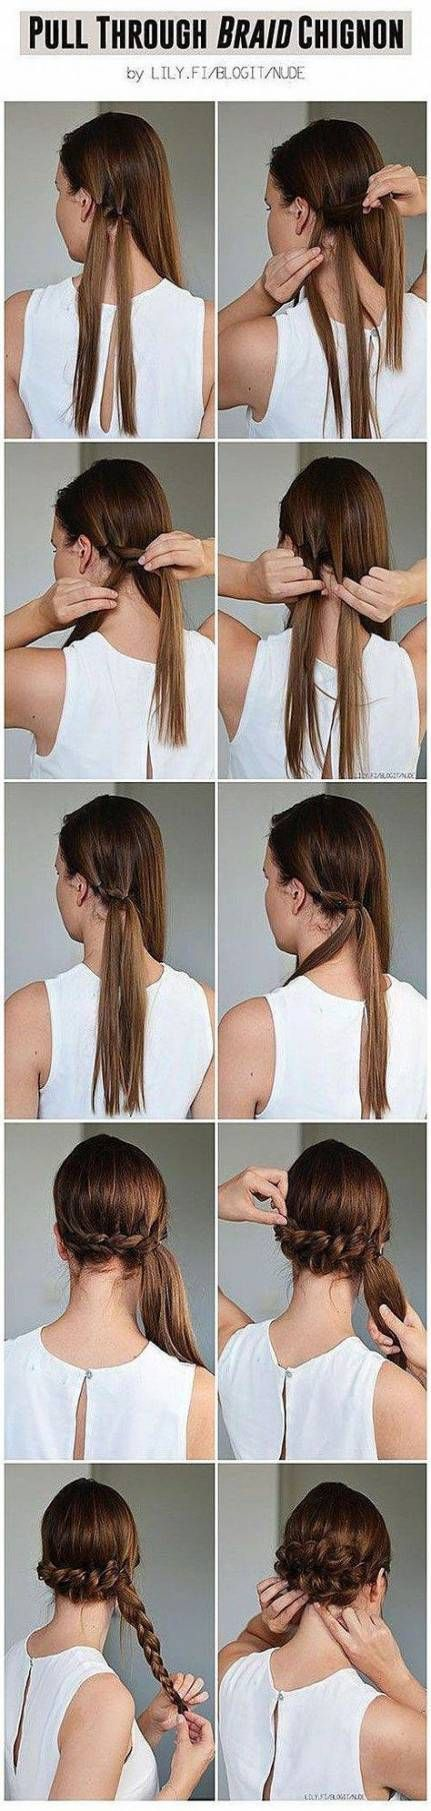 Fails Design Long Hair Tutorials 60 Ideas For 2019 – #Design #Fails #Hair #ideas…